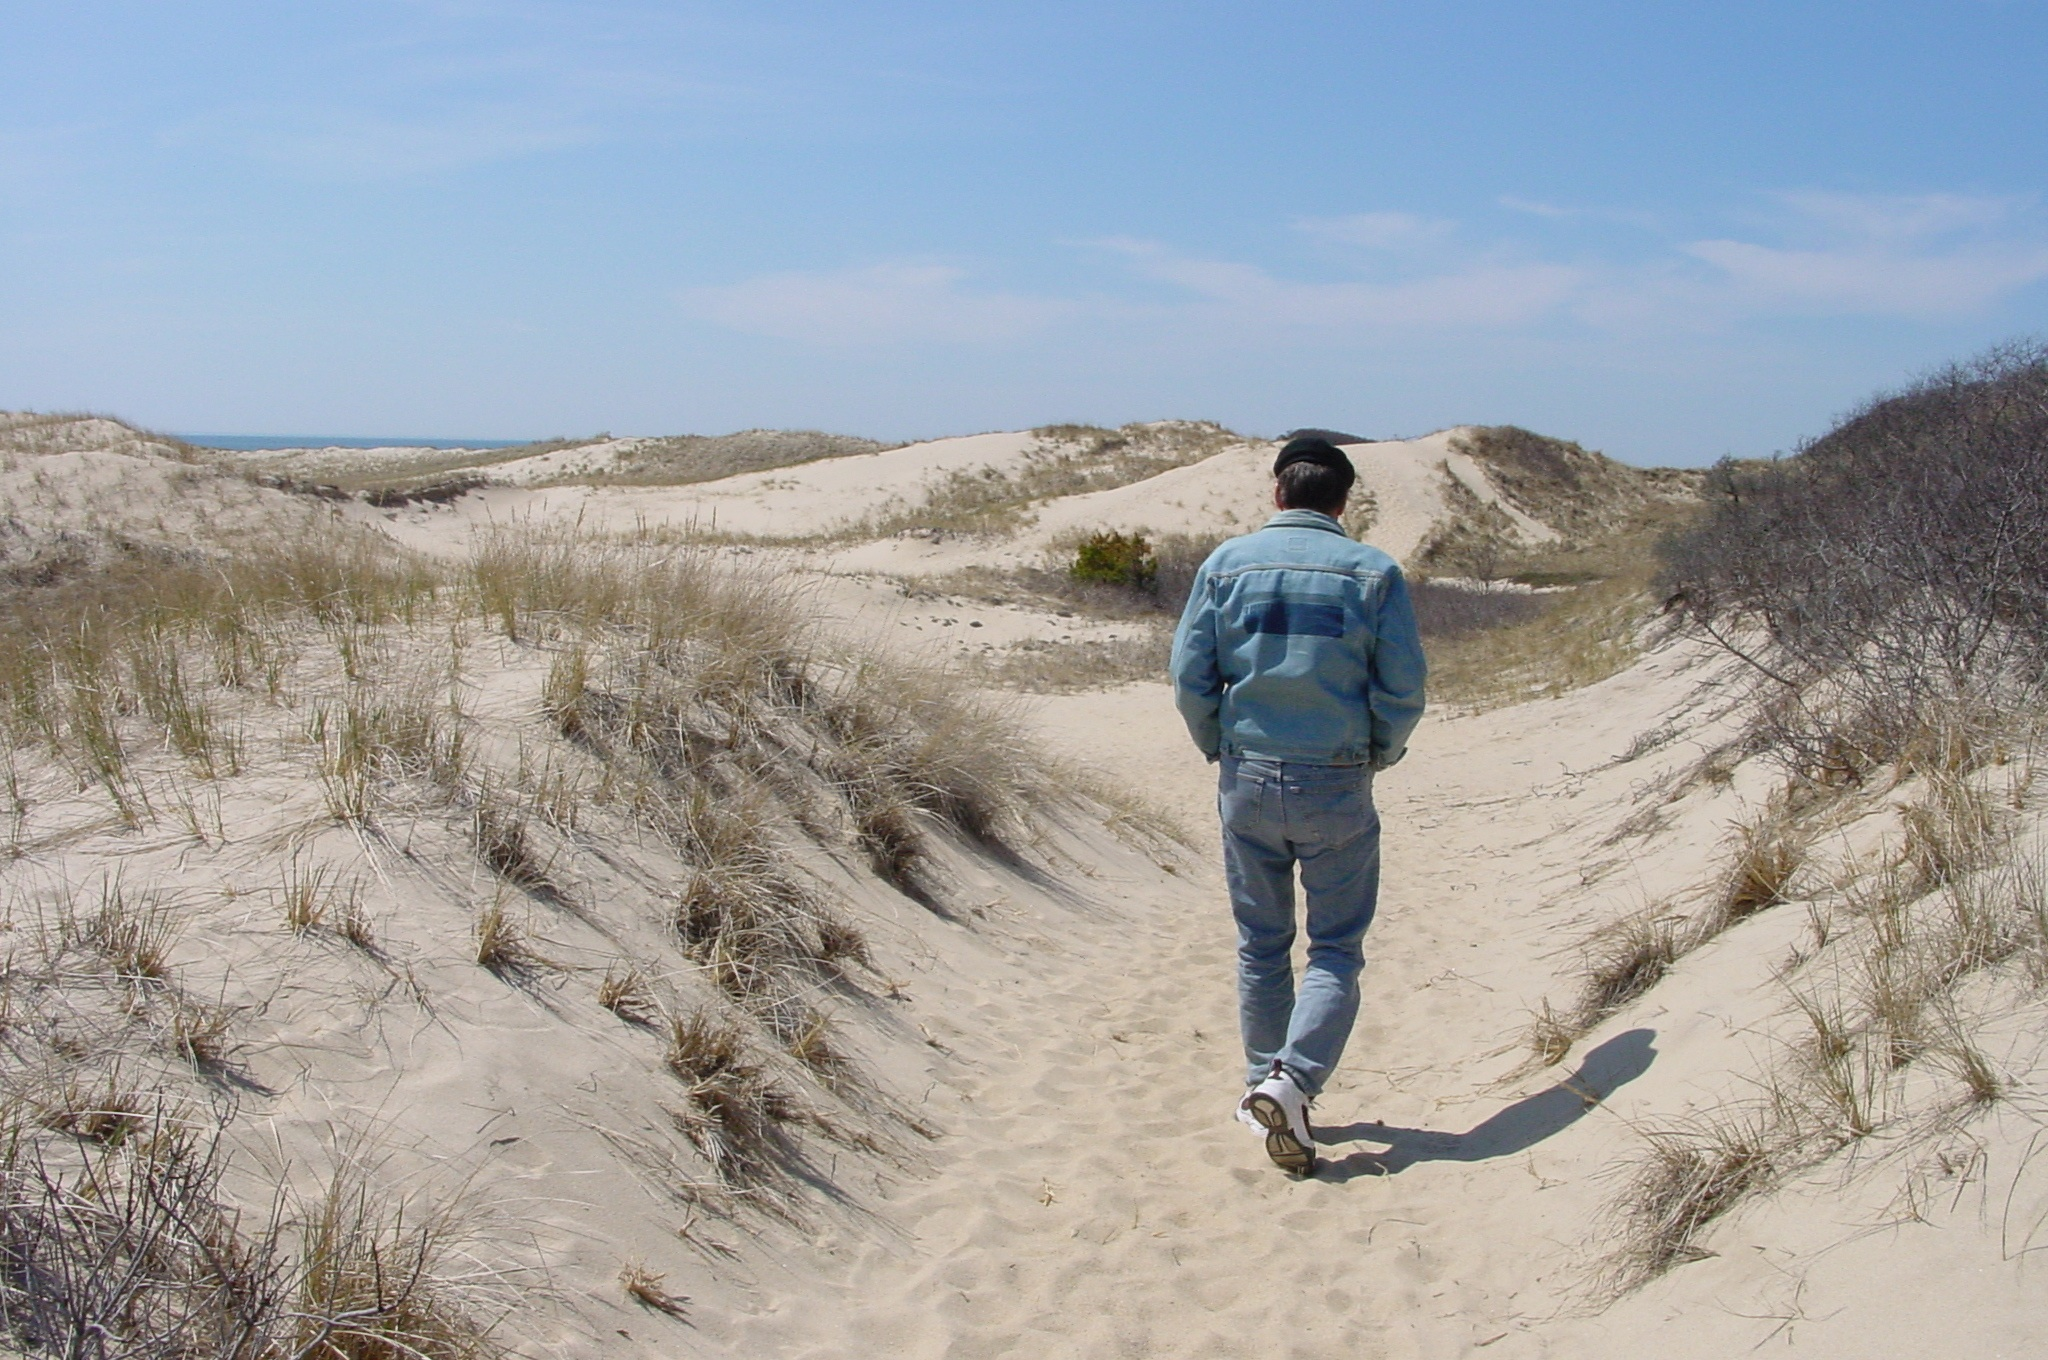 Walking the dunes in Provincetown, around 2009